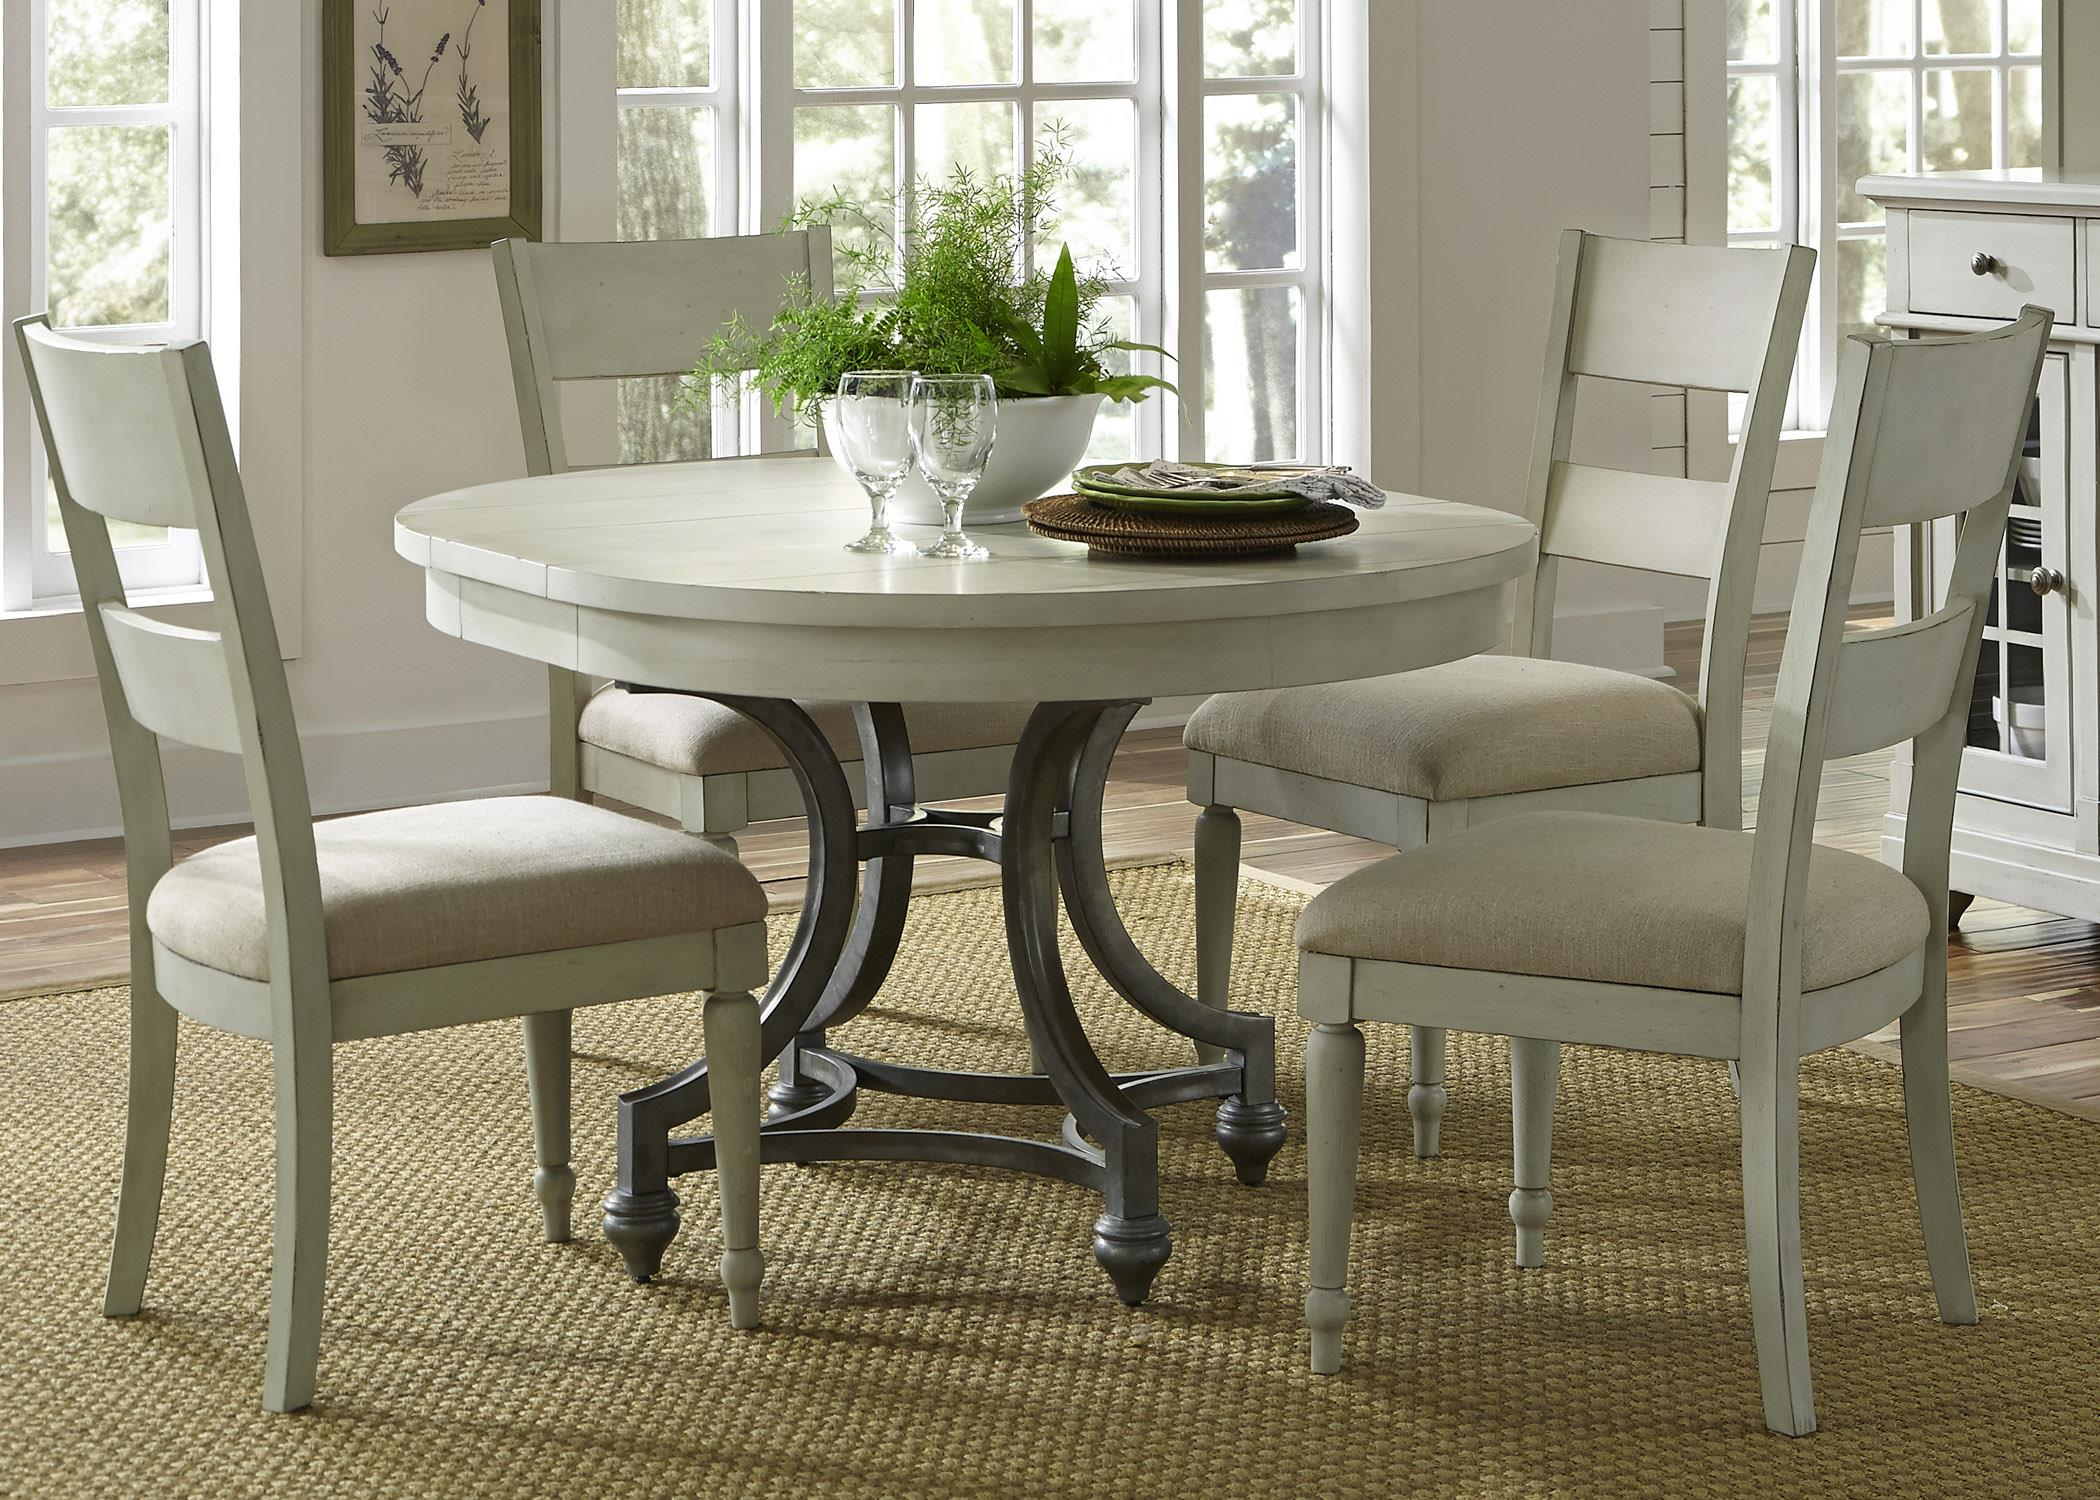 Liberty Furniture Harbor View Round Table and 4